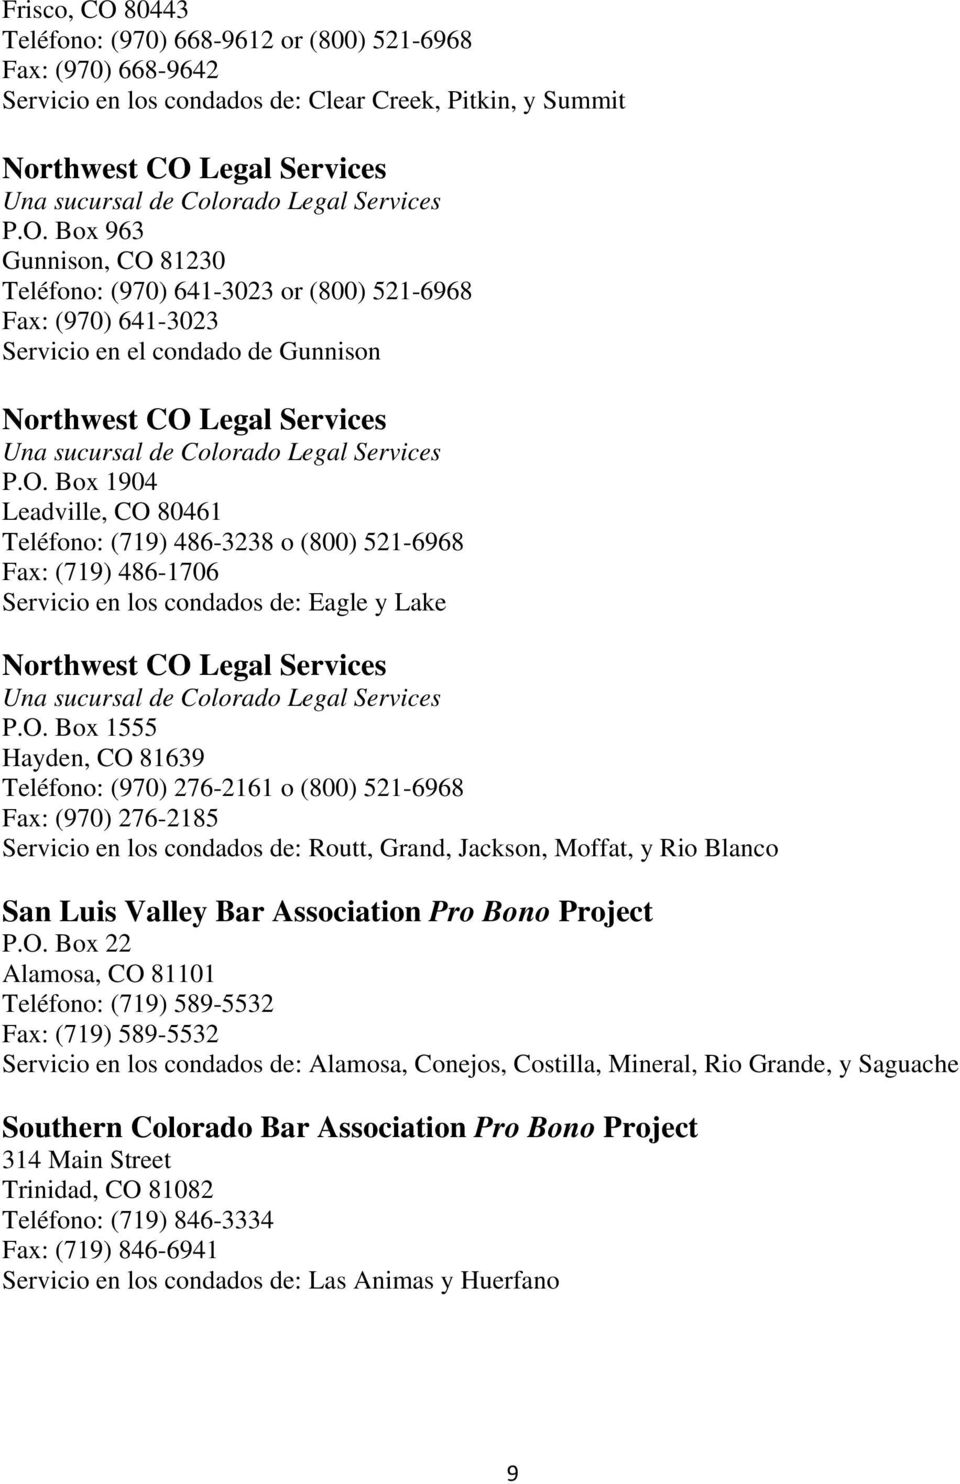 Box 963 Gunnison, CO 81230 Teléfono: (970) 641-3023 or (800) 521-6968 Fax: (970) 641-3023 Servicio en el condado de Gunnison Northwest CO Legal Services Una sucursal de Colorado Legal  Box 1904